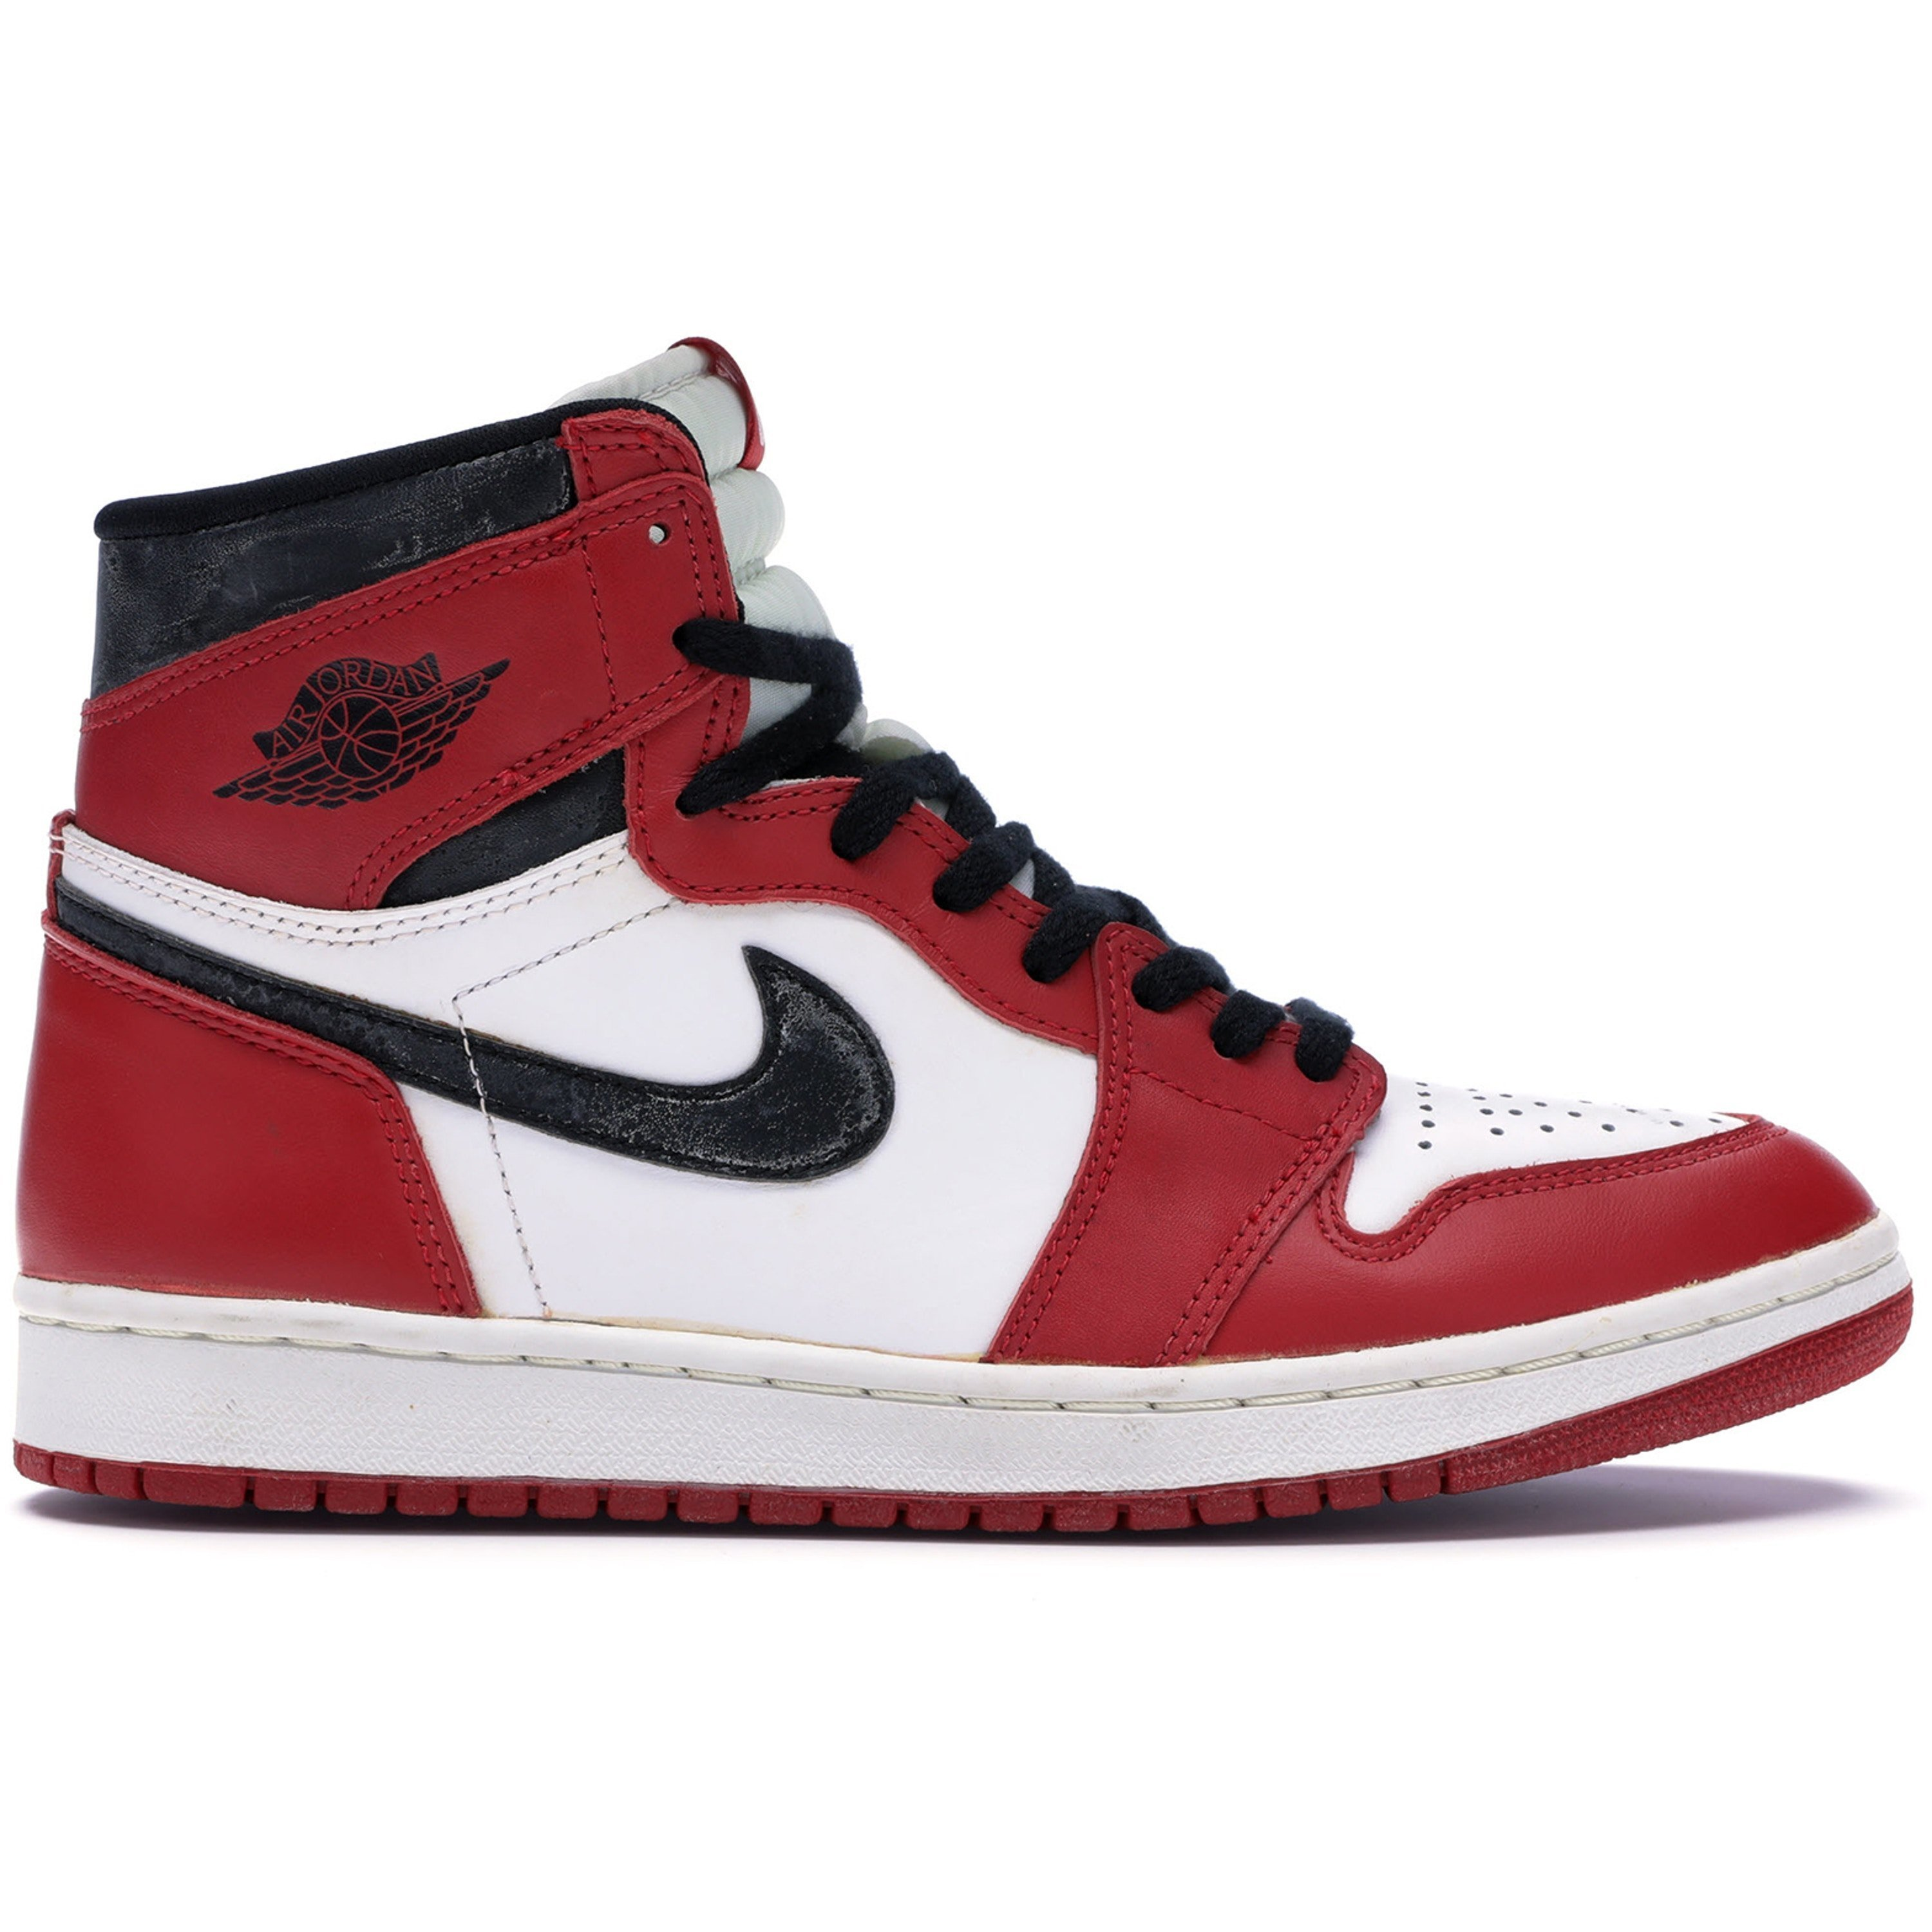 Jordan 1 Retro Chicago (1994) (130207-101)